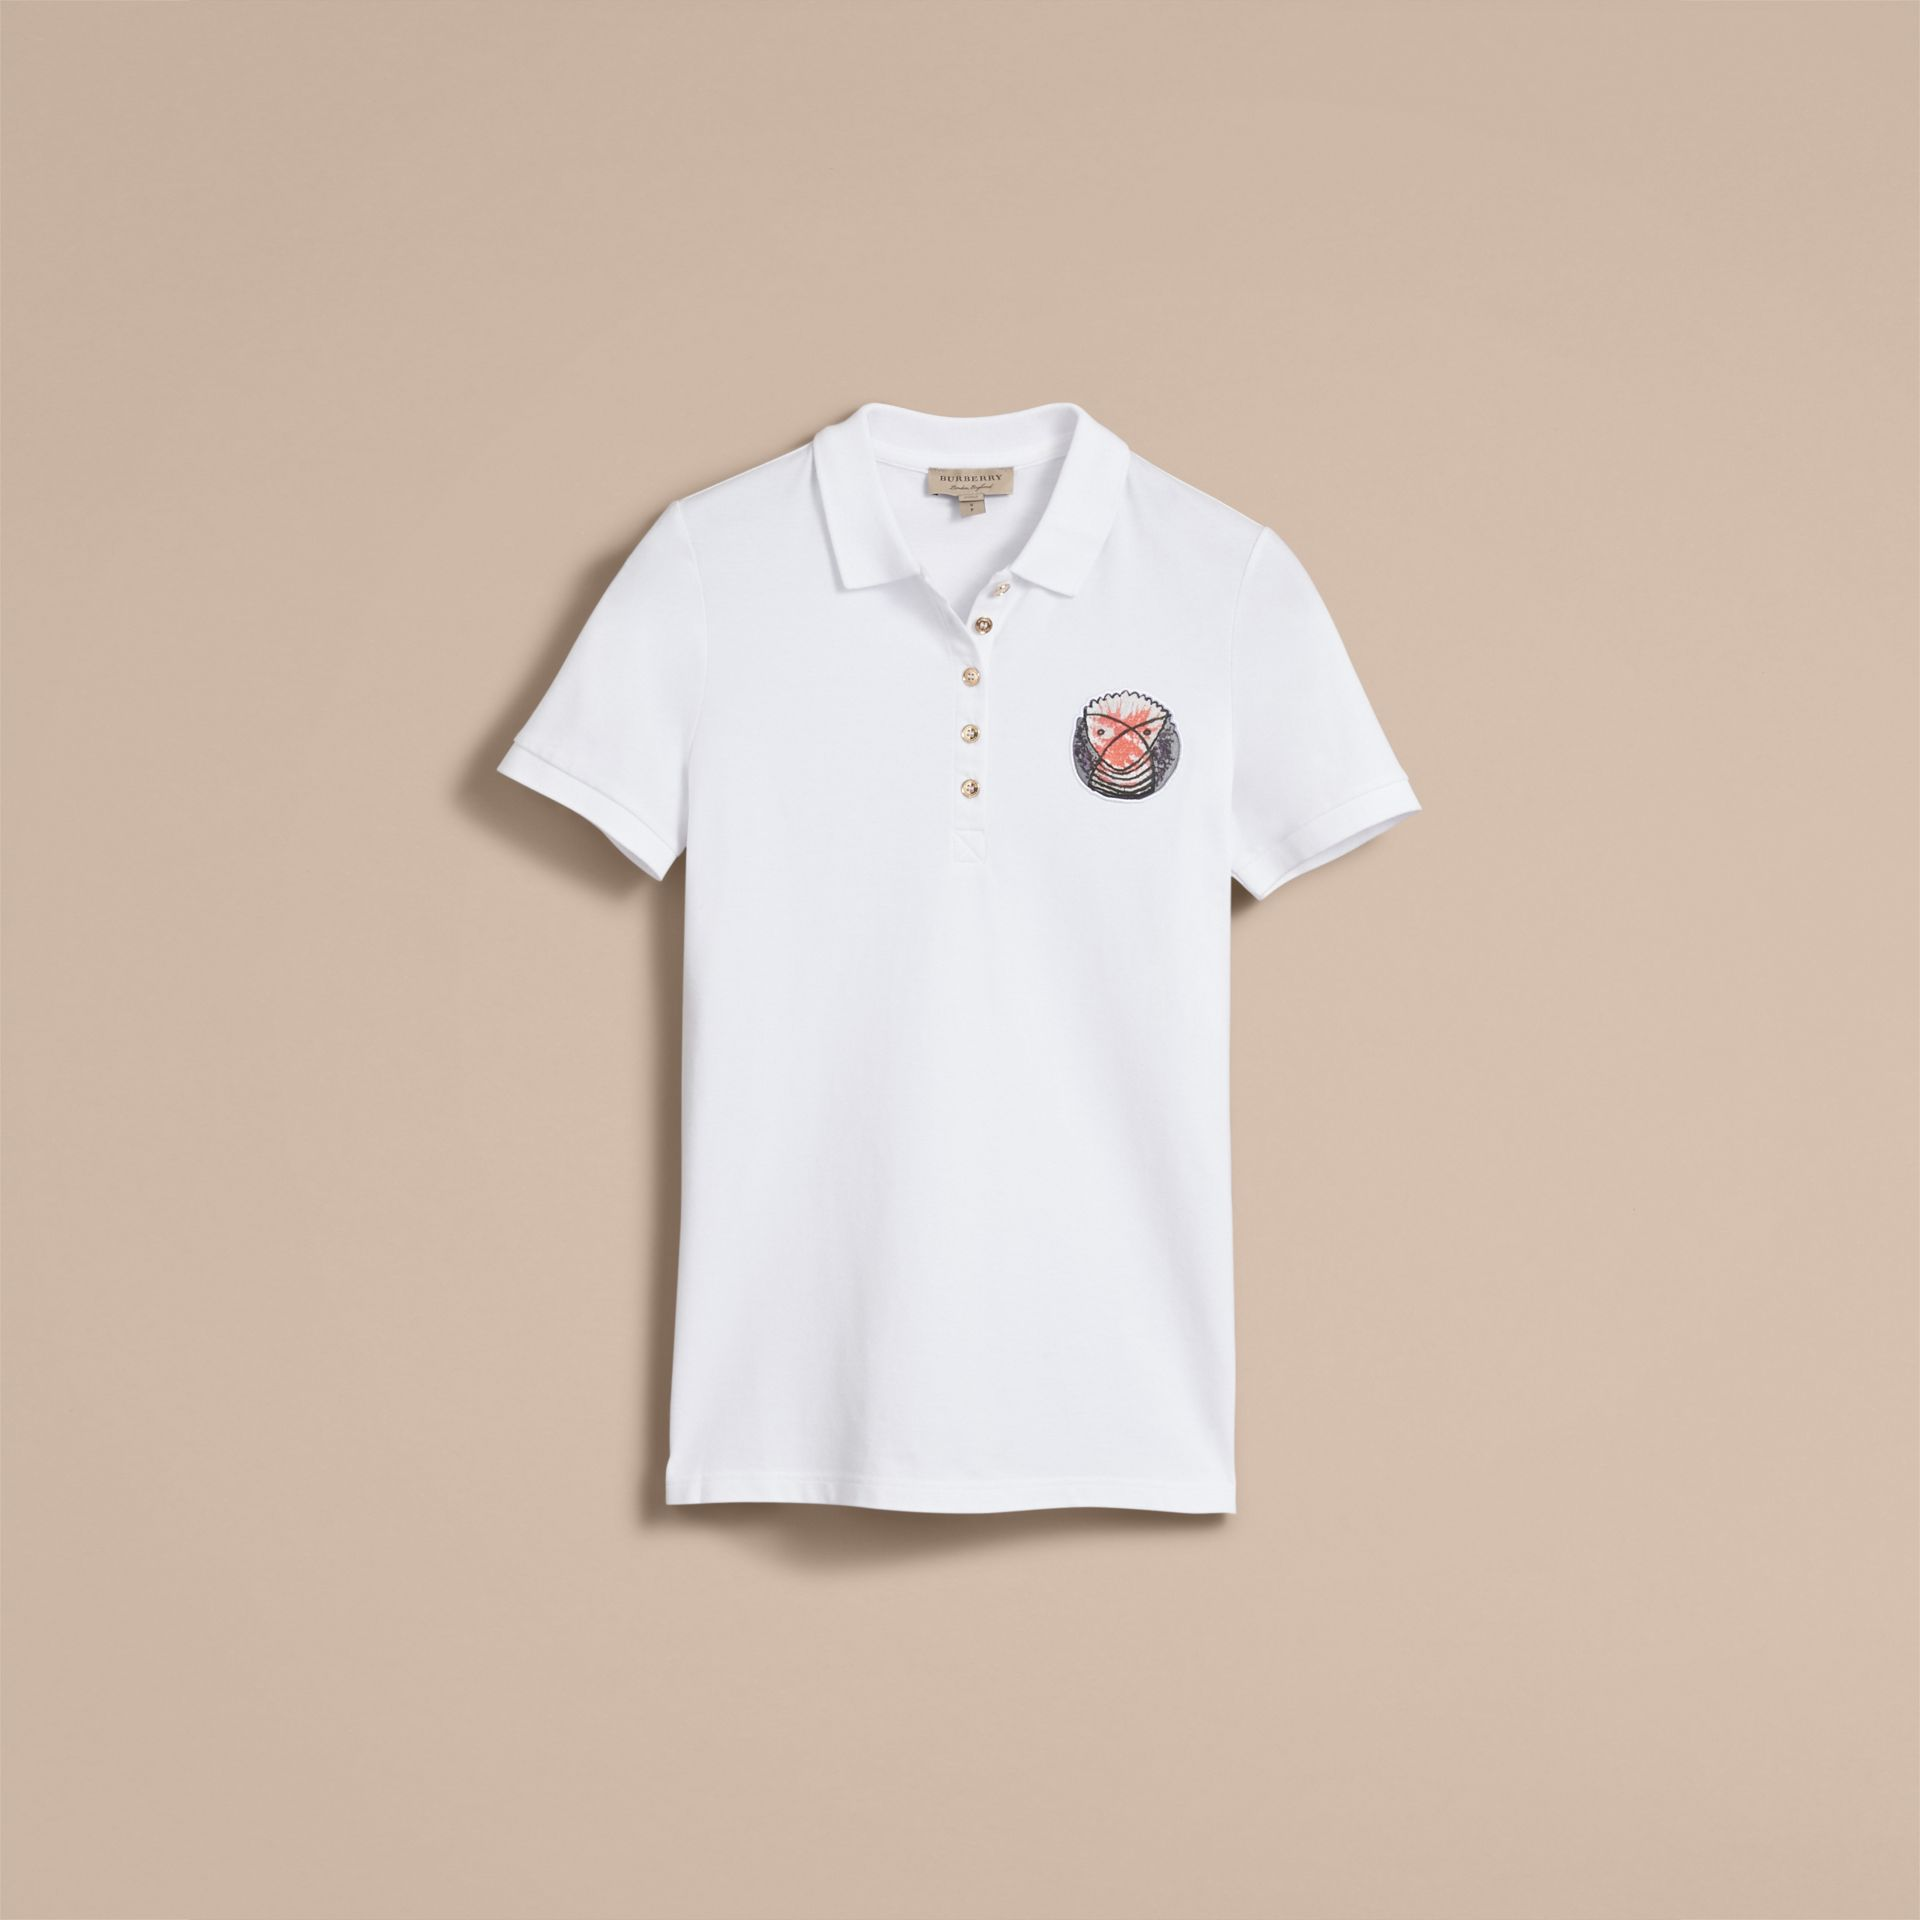 Pallas Heads Appliqué Cotton Piqué Polo Shirt White - gallery image 4